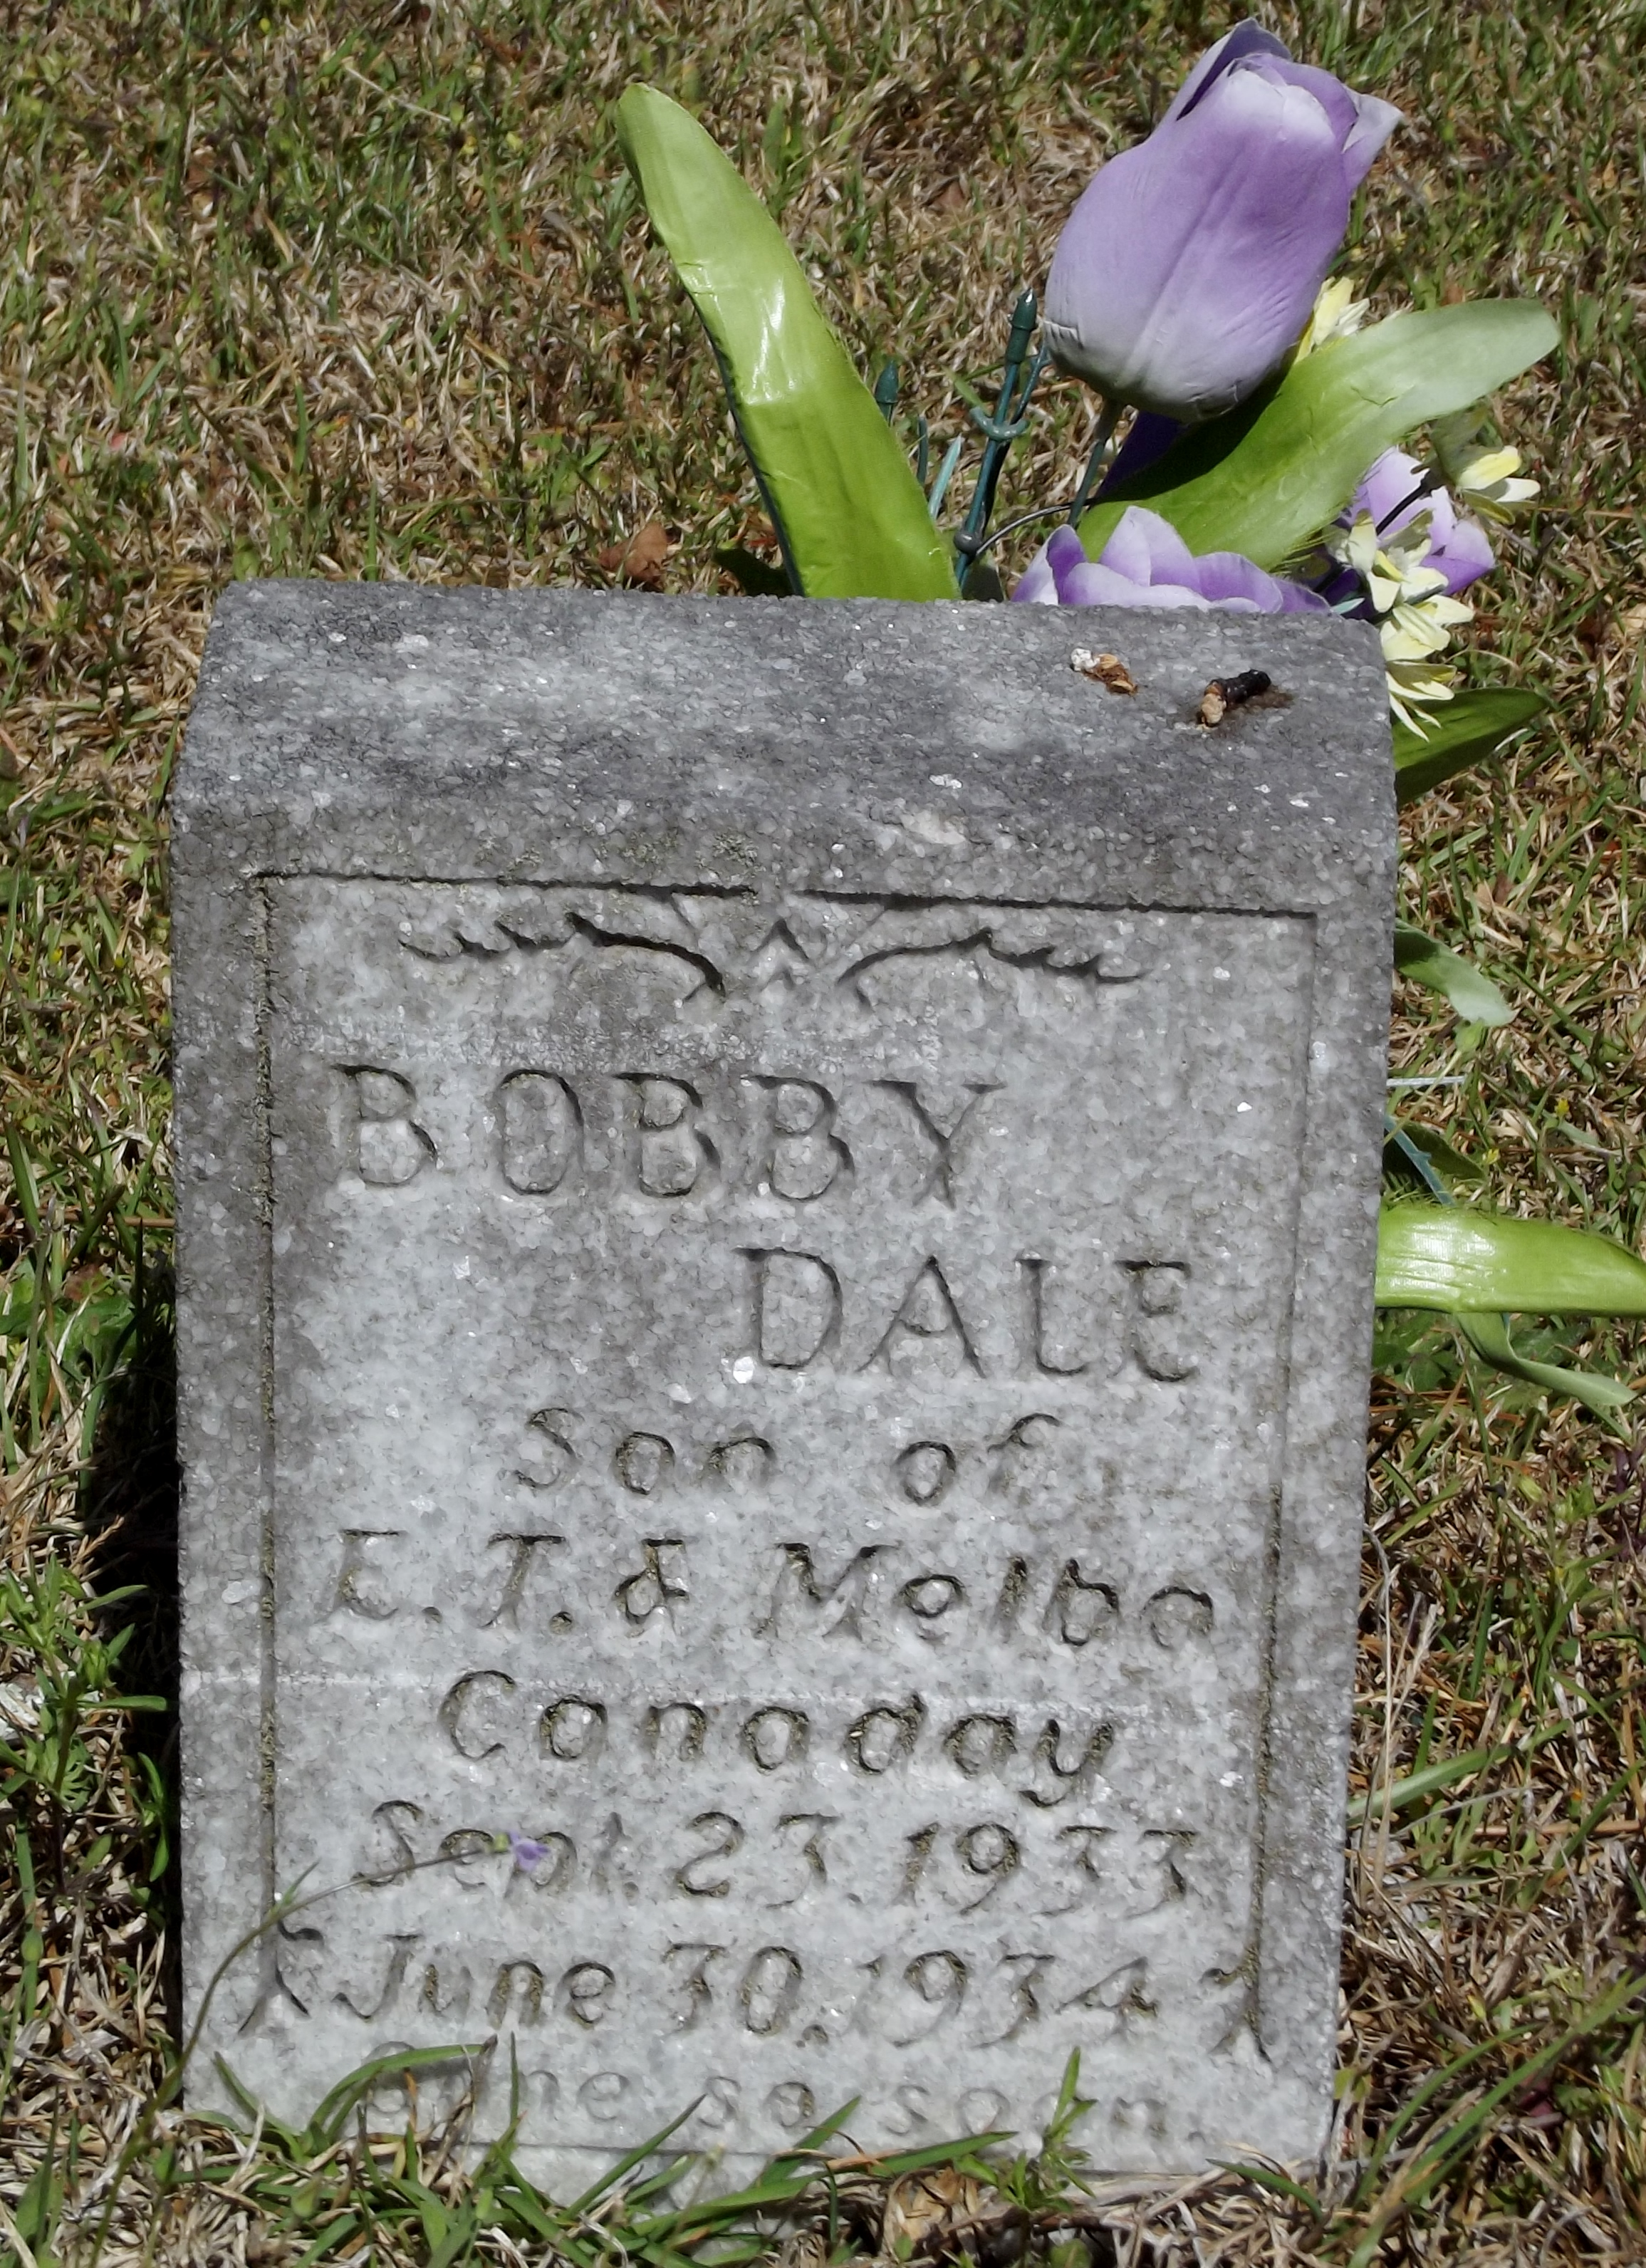 Bobby Dale Canaday